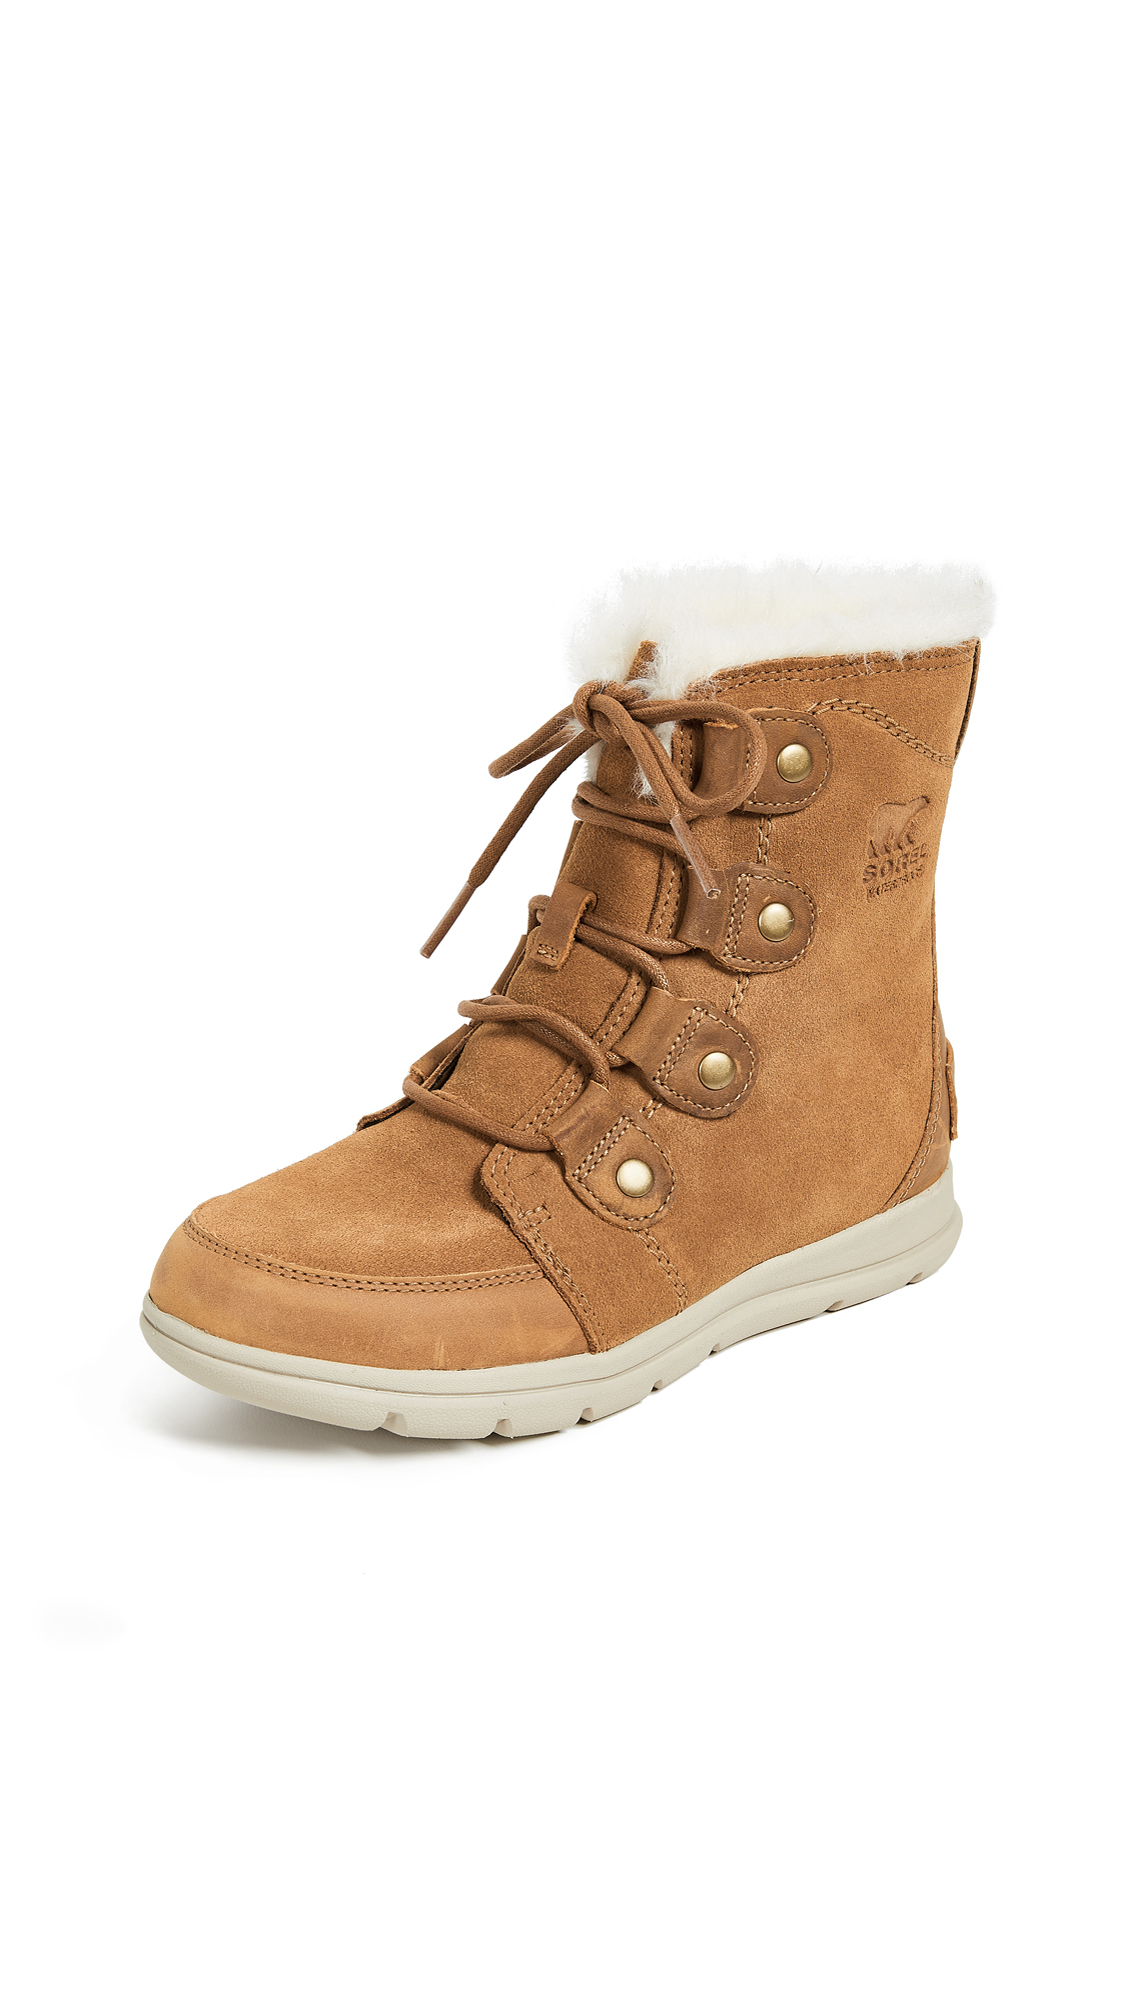 Sorel Sorel Explorer Joan Boots - Camel Brown